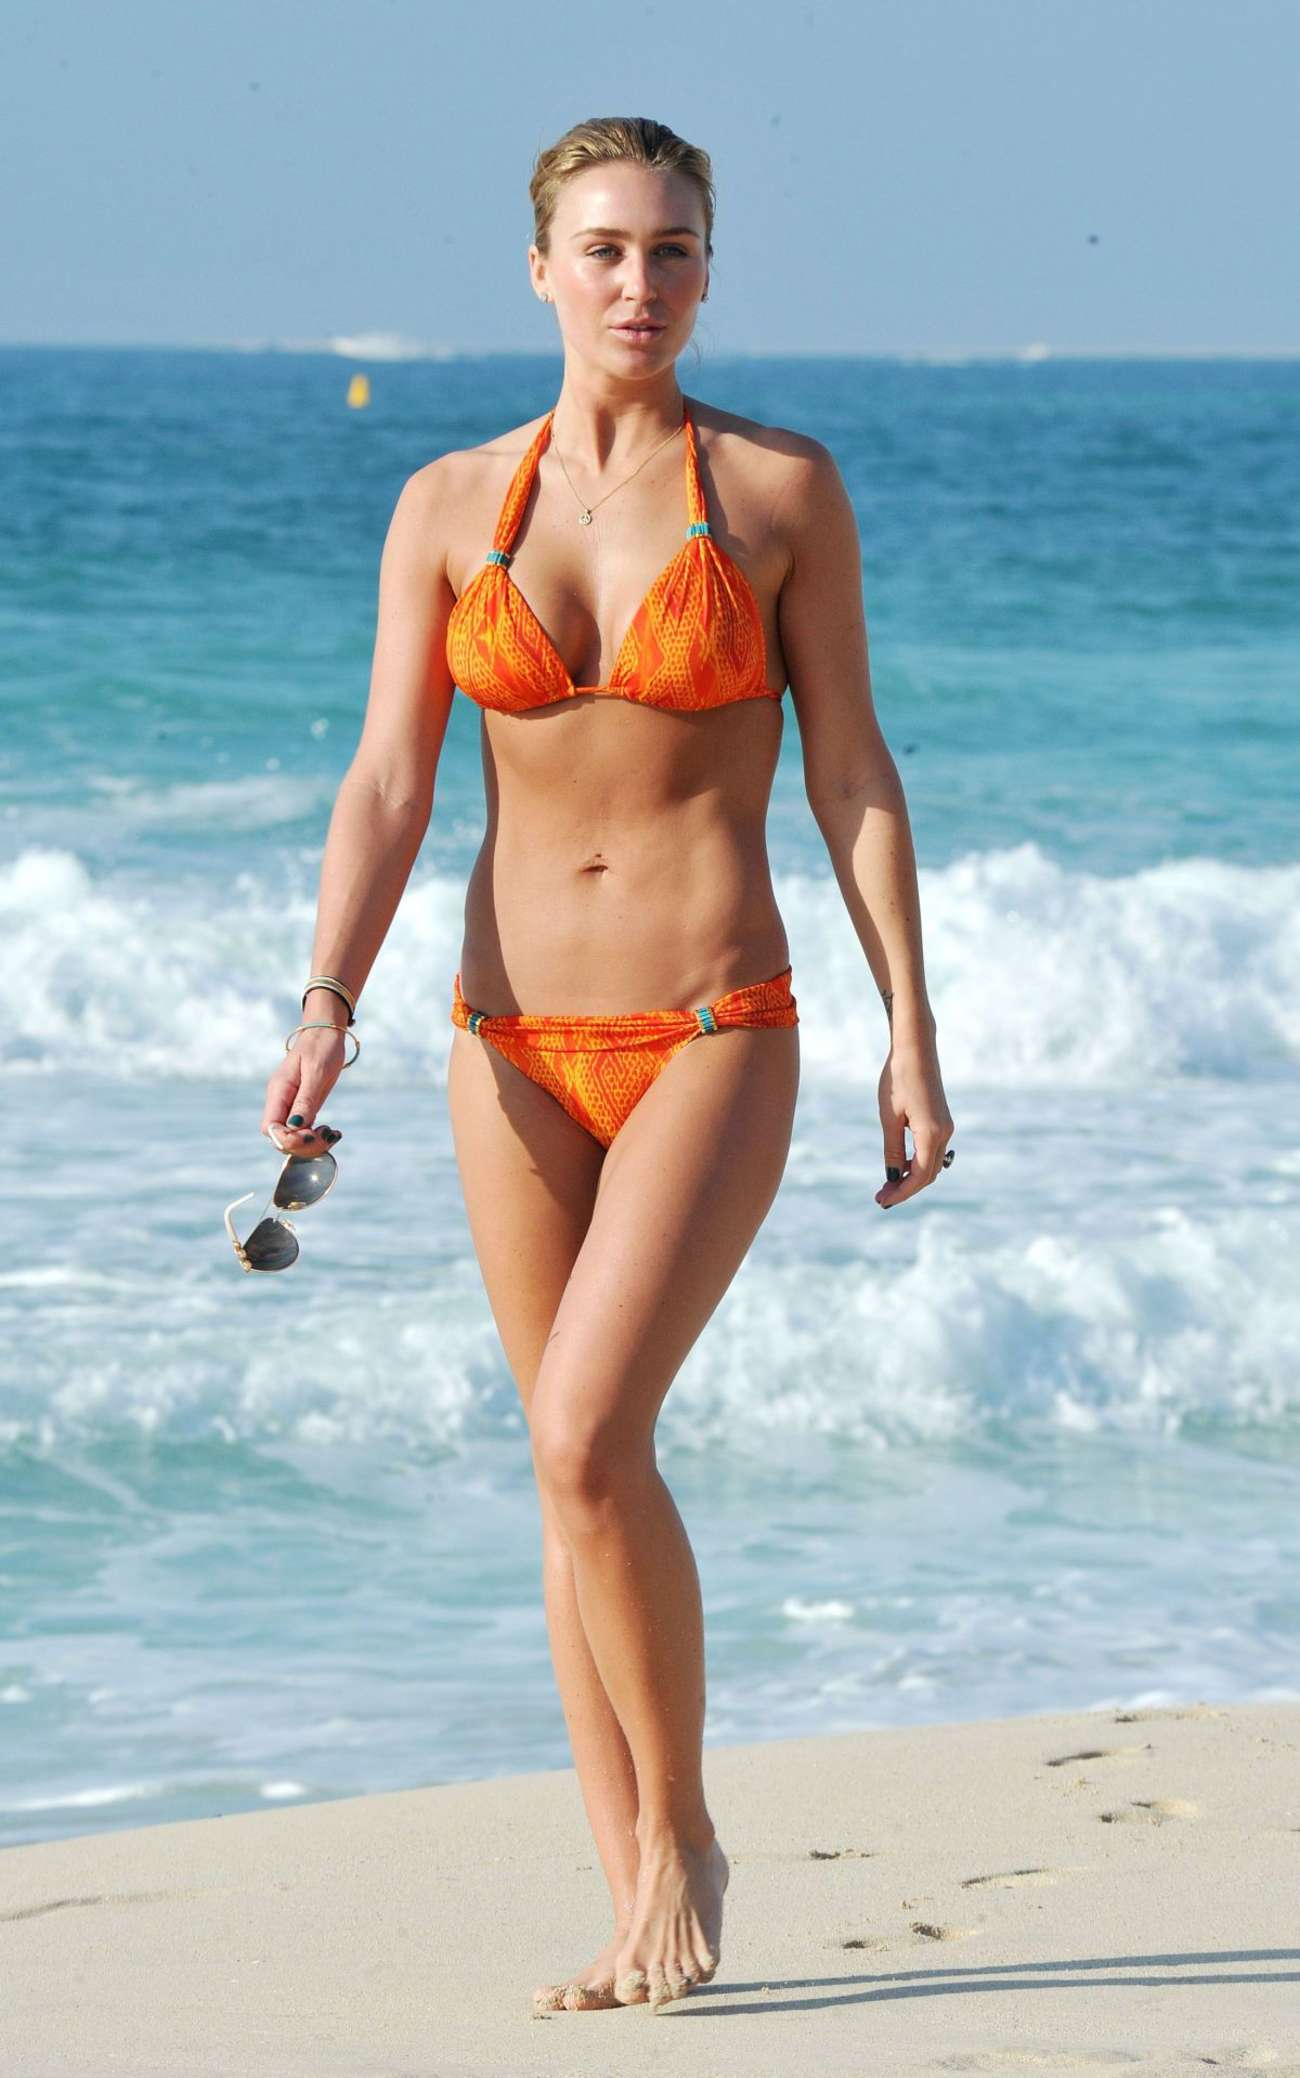 Alex Gerrard Wearing Bikini at a Beach in Dubai